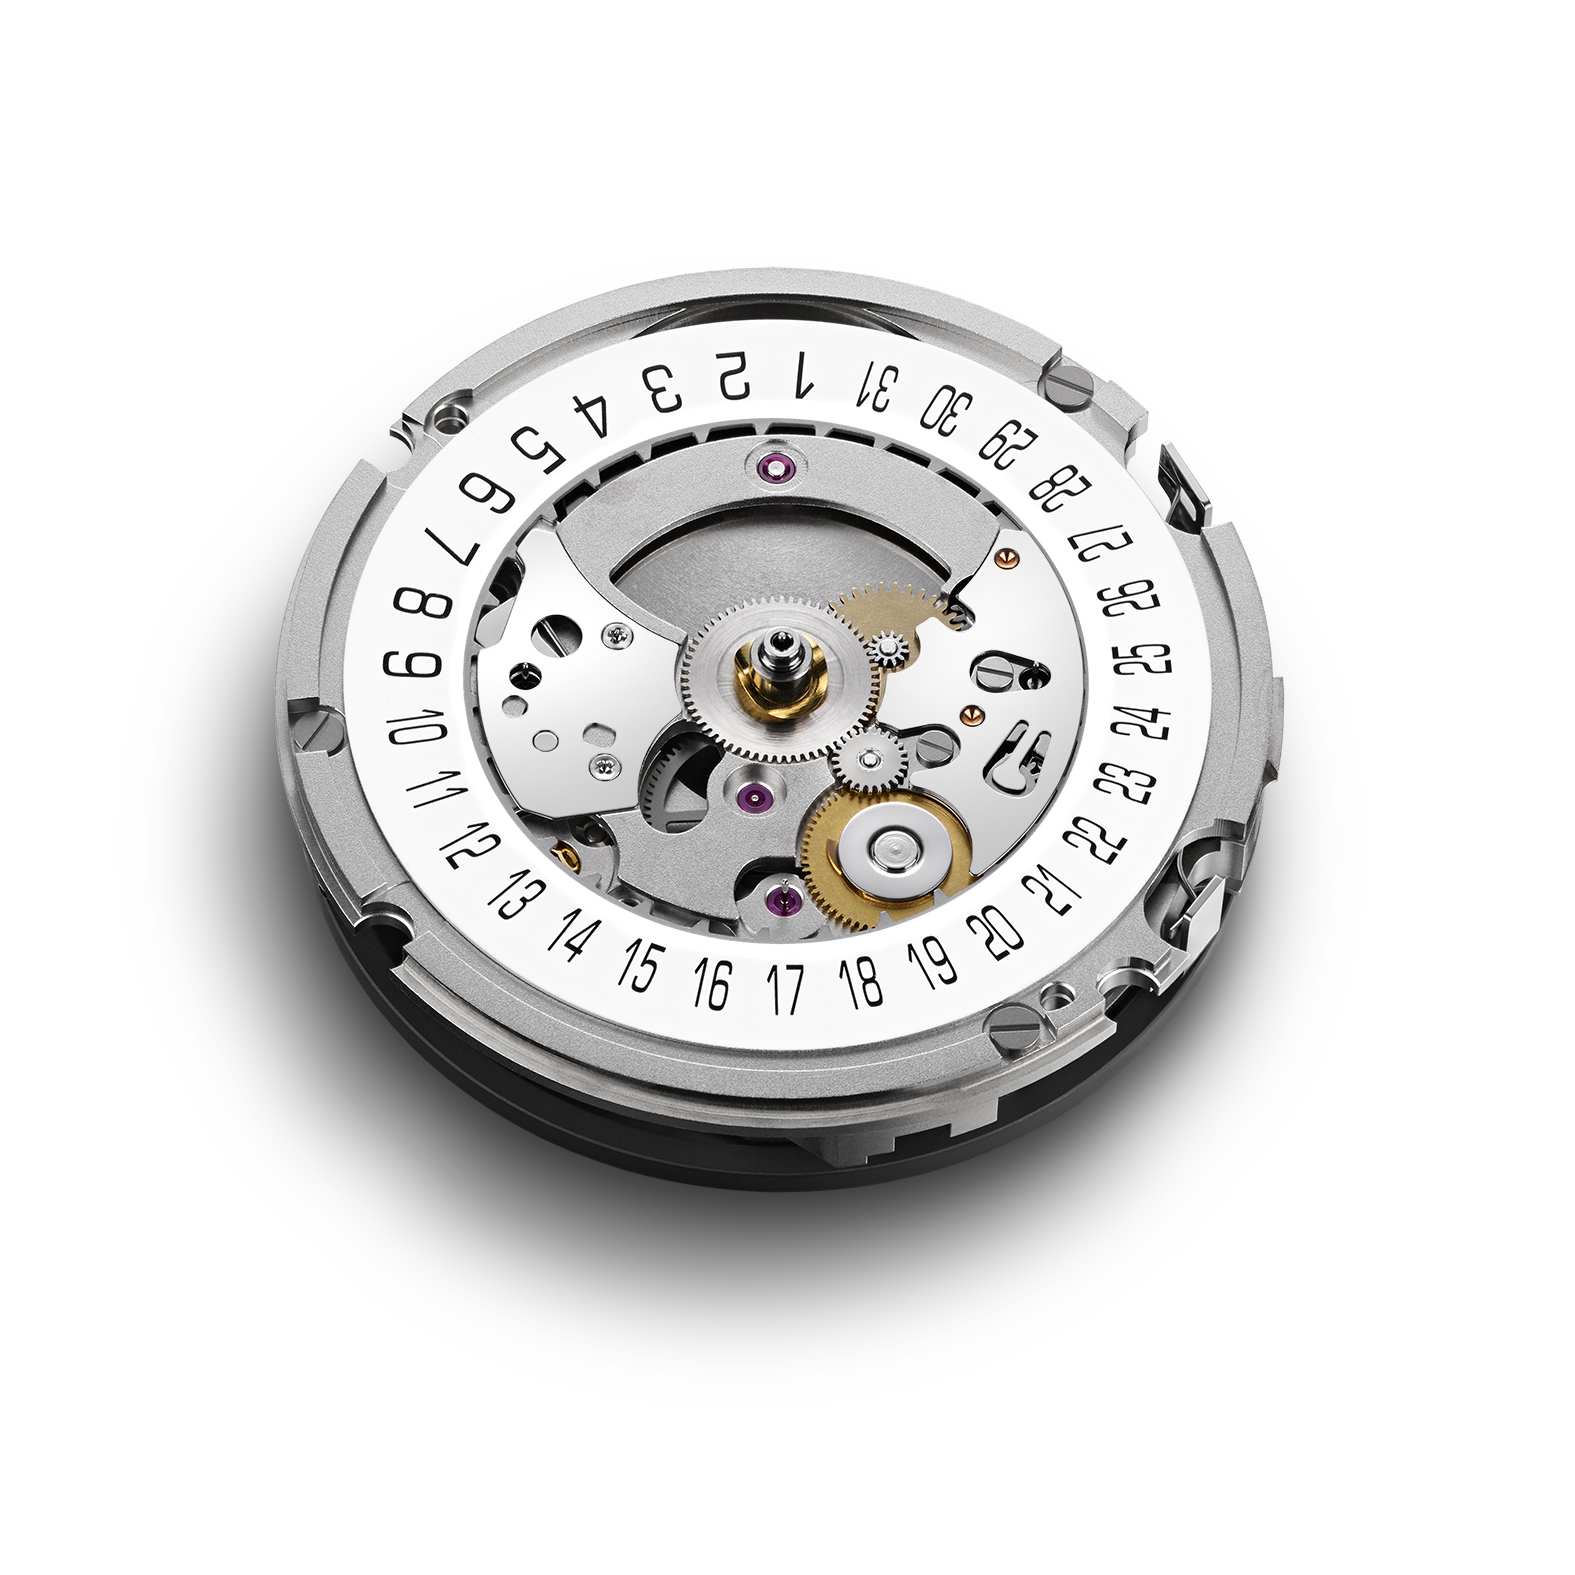 TAG Heuer 02 Manufacture Calibre - automatic chronograph with date & 80-hour power reserve